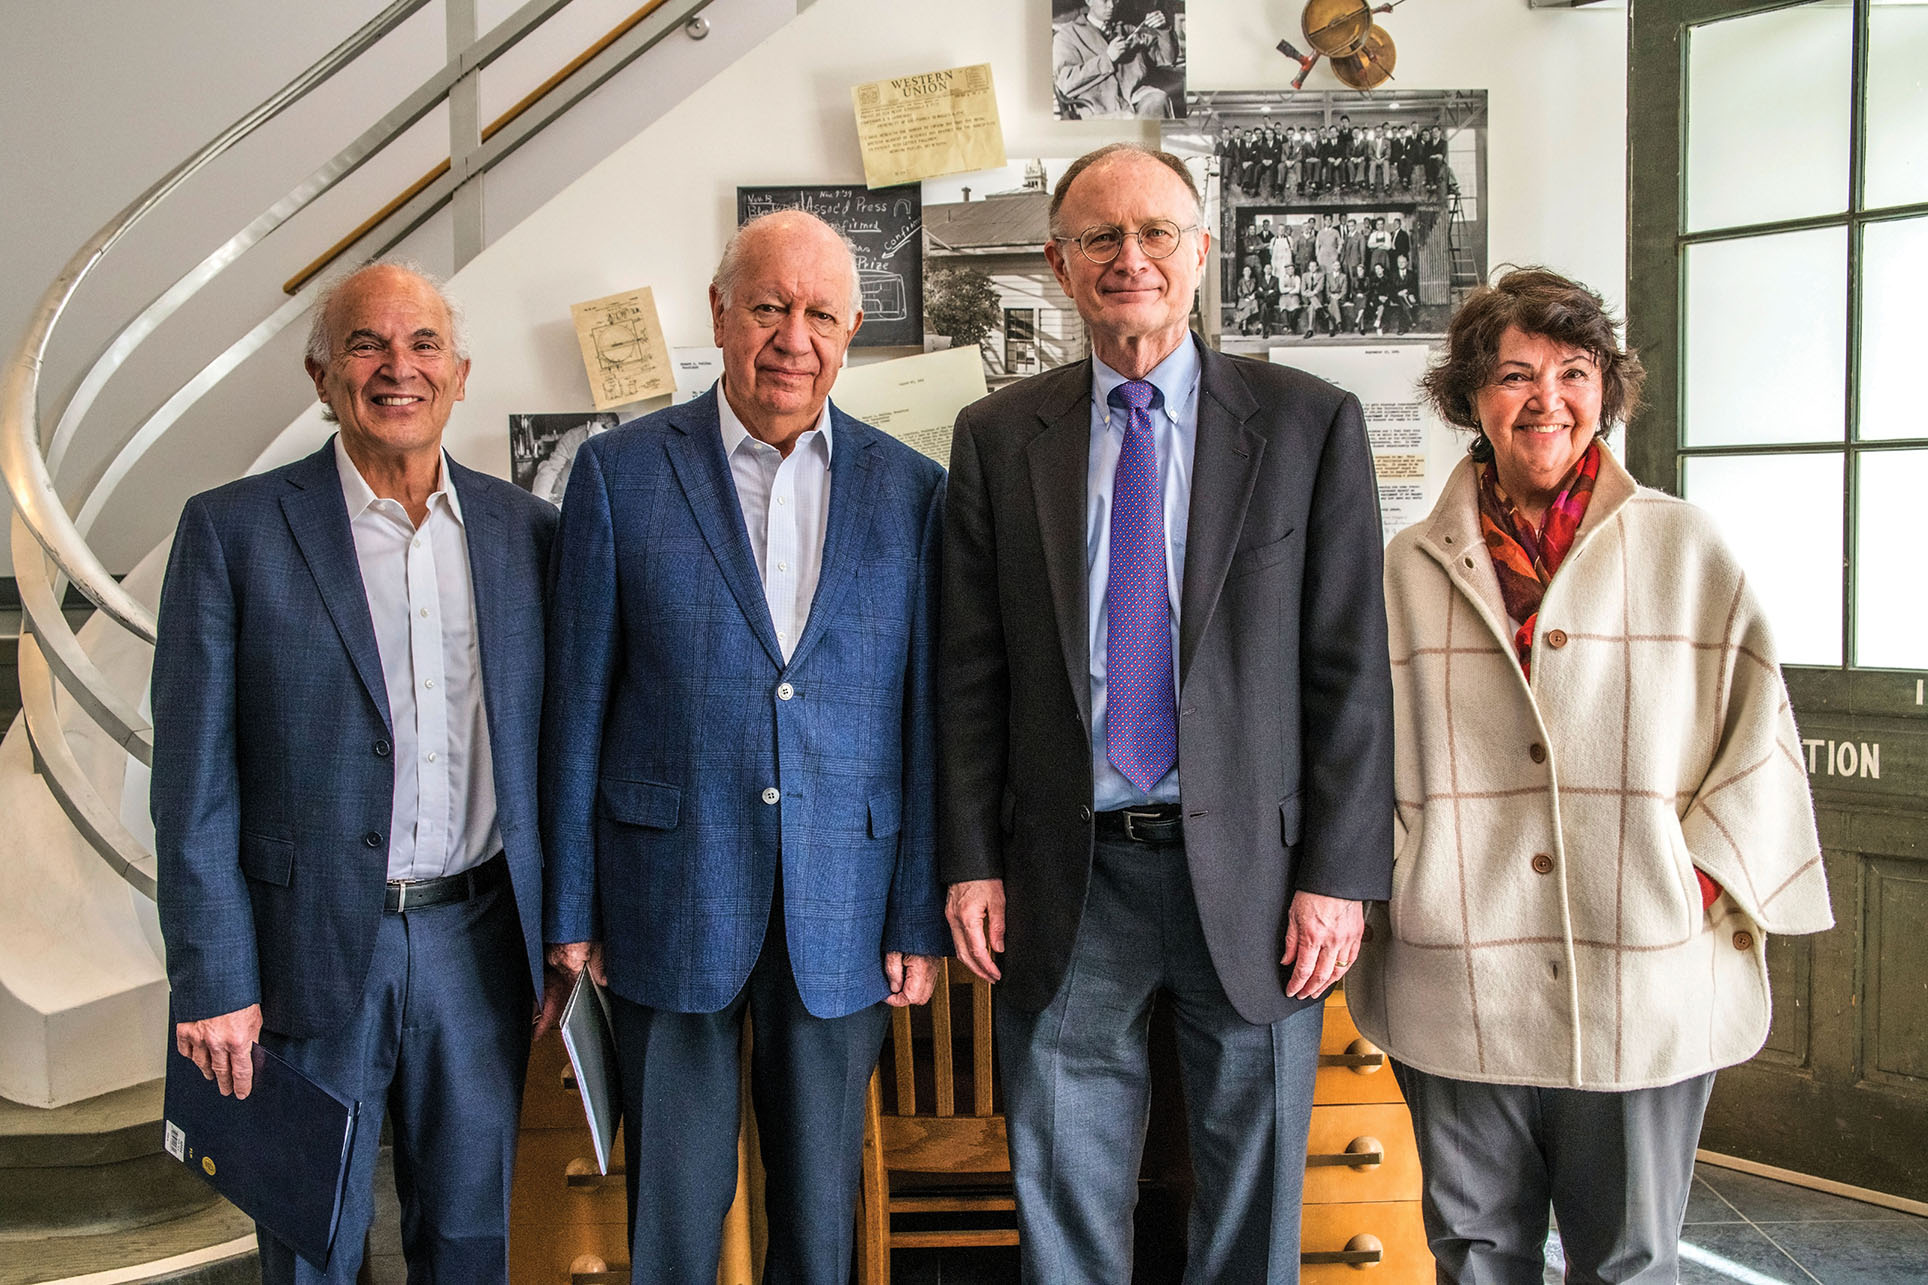 From left: Professor Harley Shaiken, President Ricardo Lagos, Lawrence Berkeley National Laboratory Director Michael Witherell, and Professor Beatriz Manz in January 2018. (Photo courtesy of Lawrence Berkeley National Lab.)